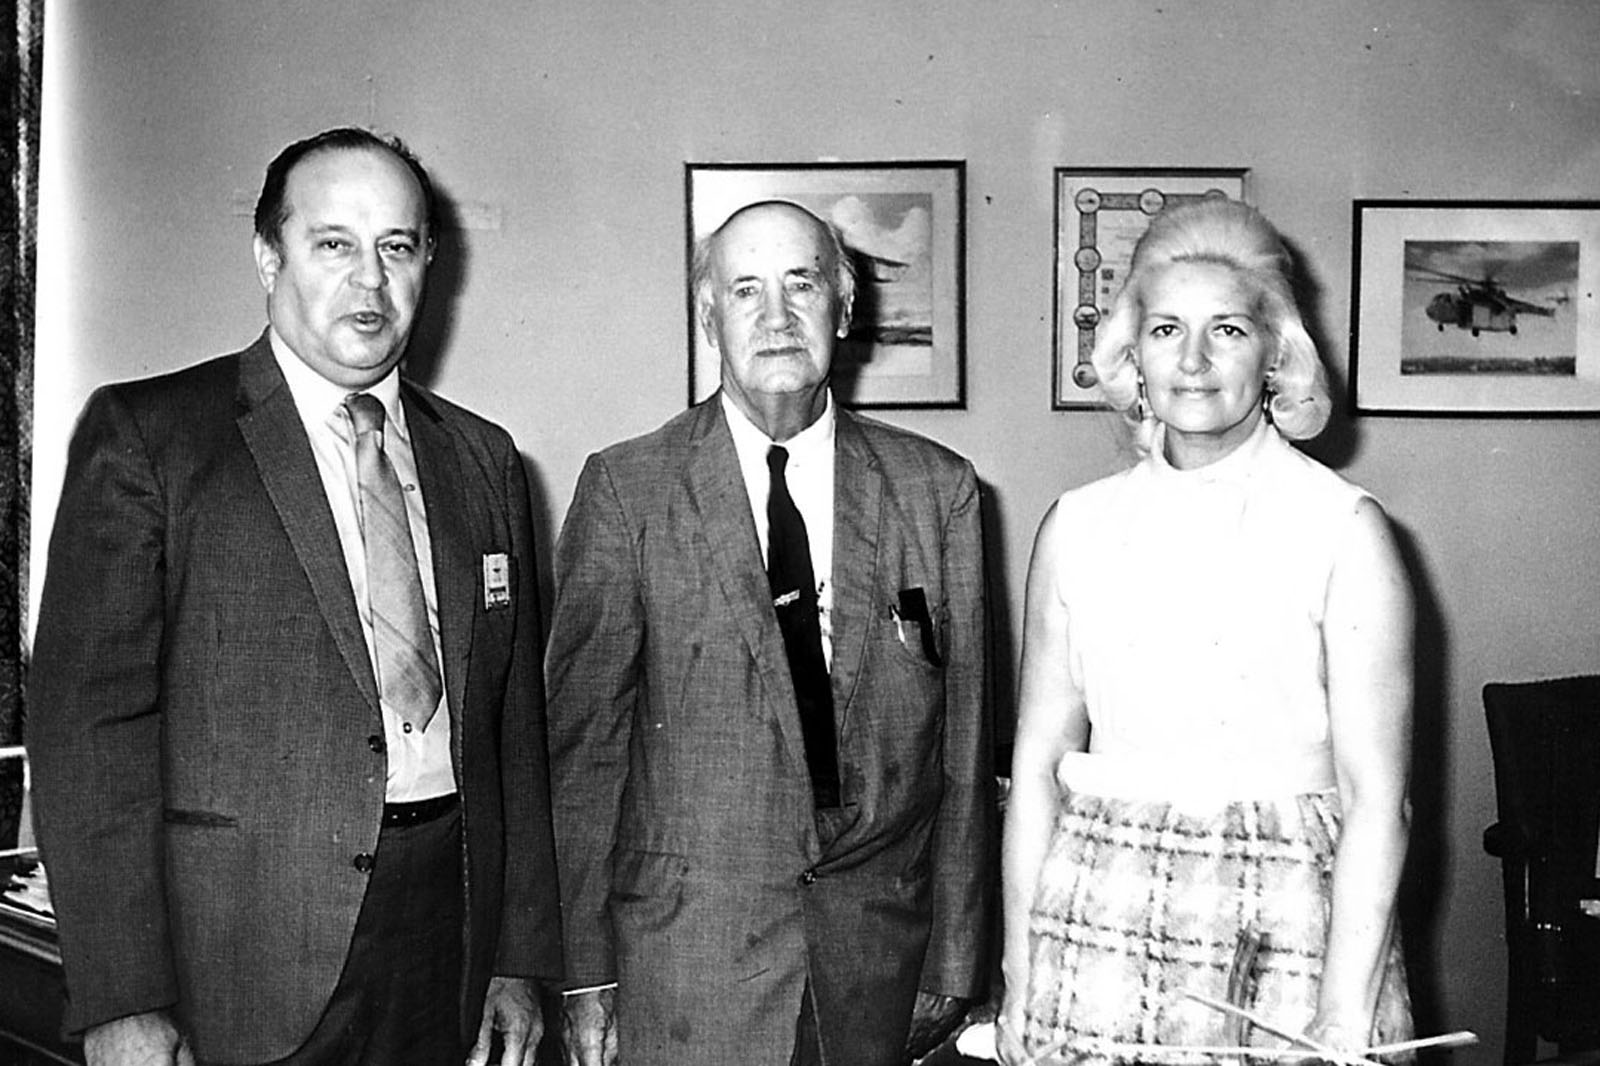 John J. Sanduski (left) and his wife, Irene, with helicopter pioneer Igor I. Sikorsky, who signed Sanduski's license to fly a helicopter.